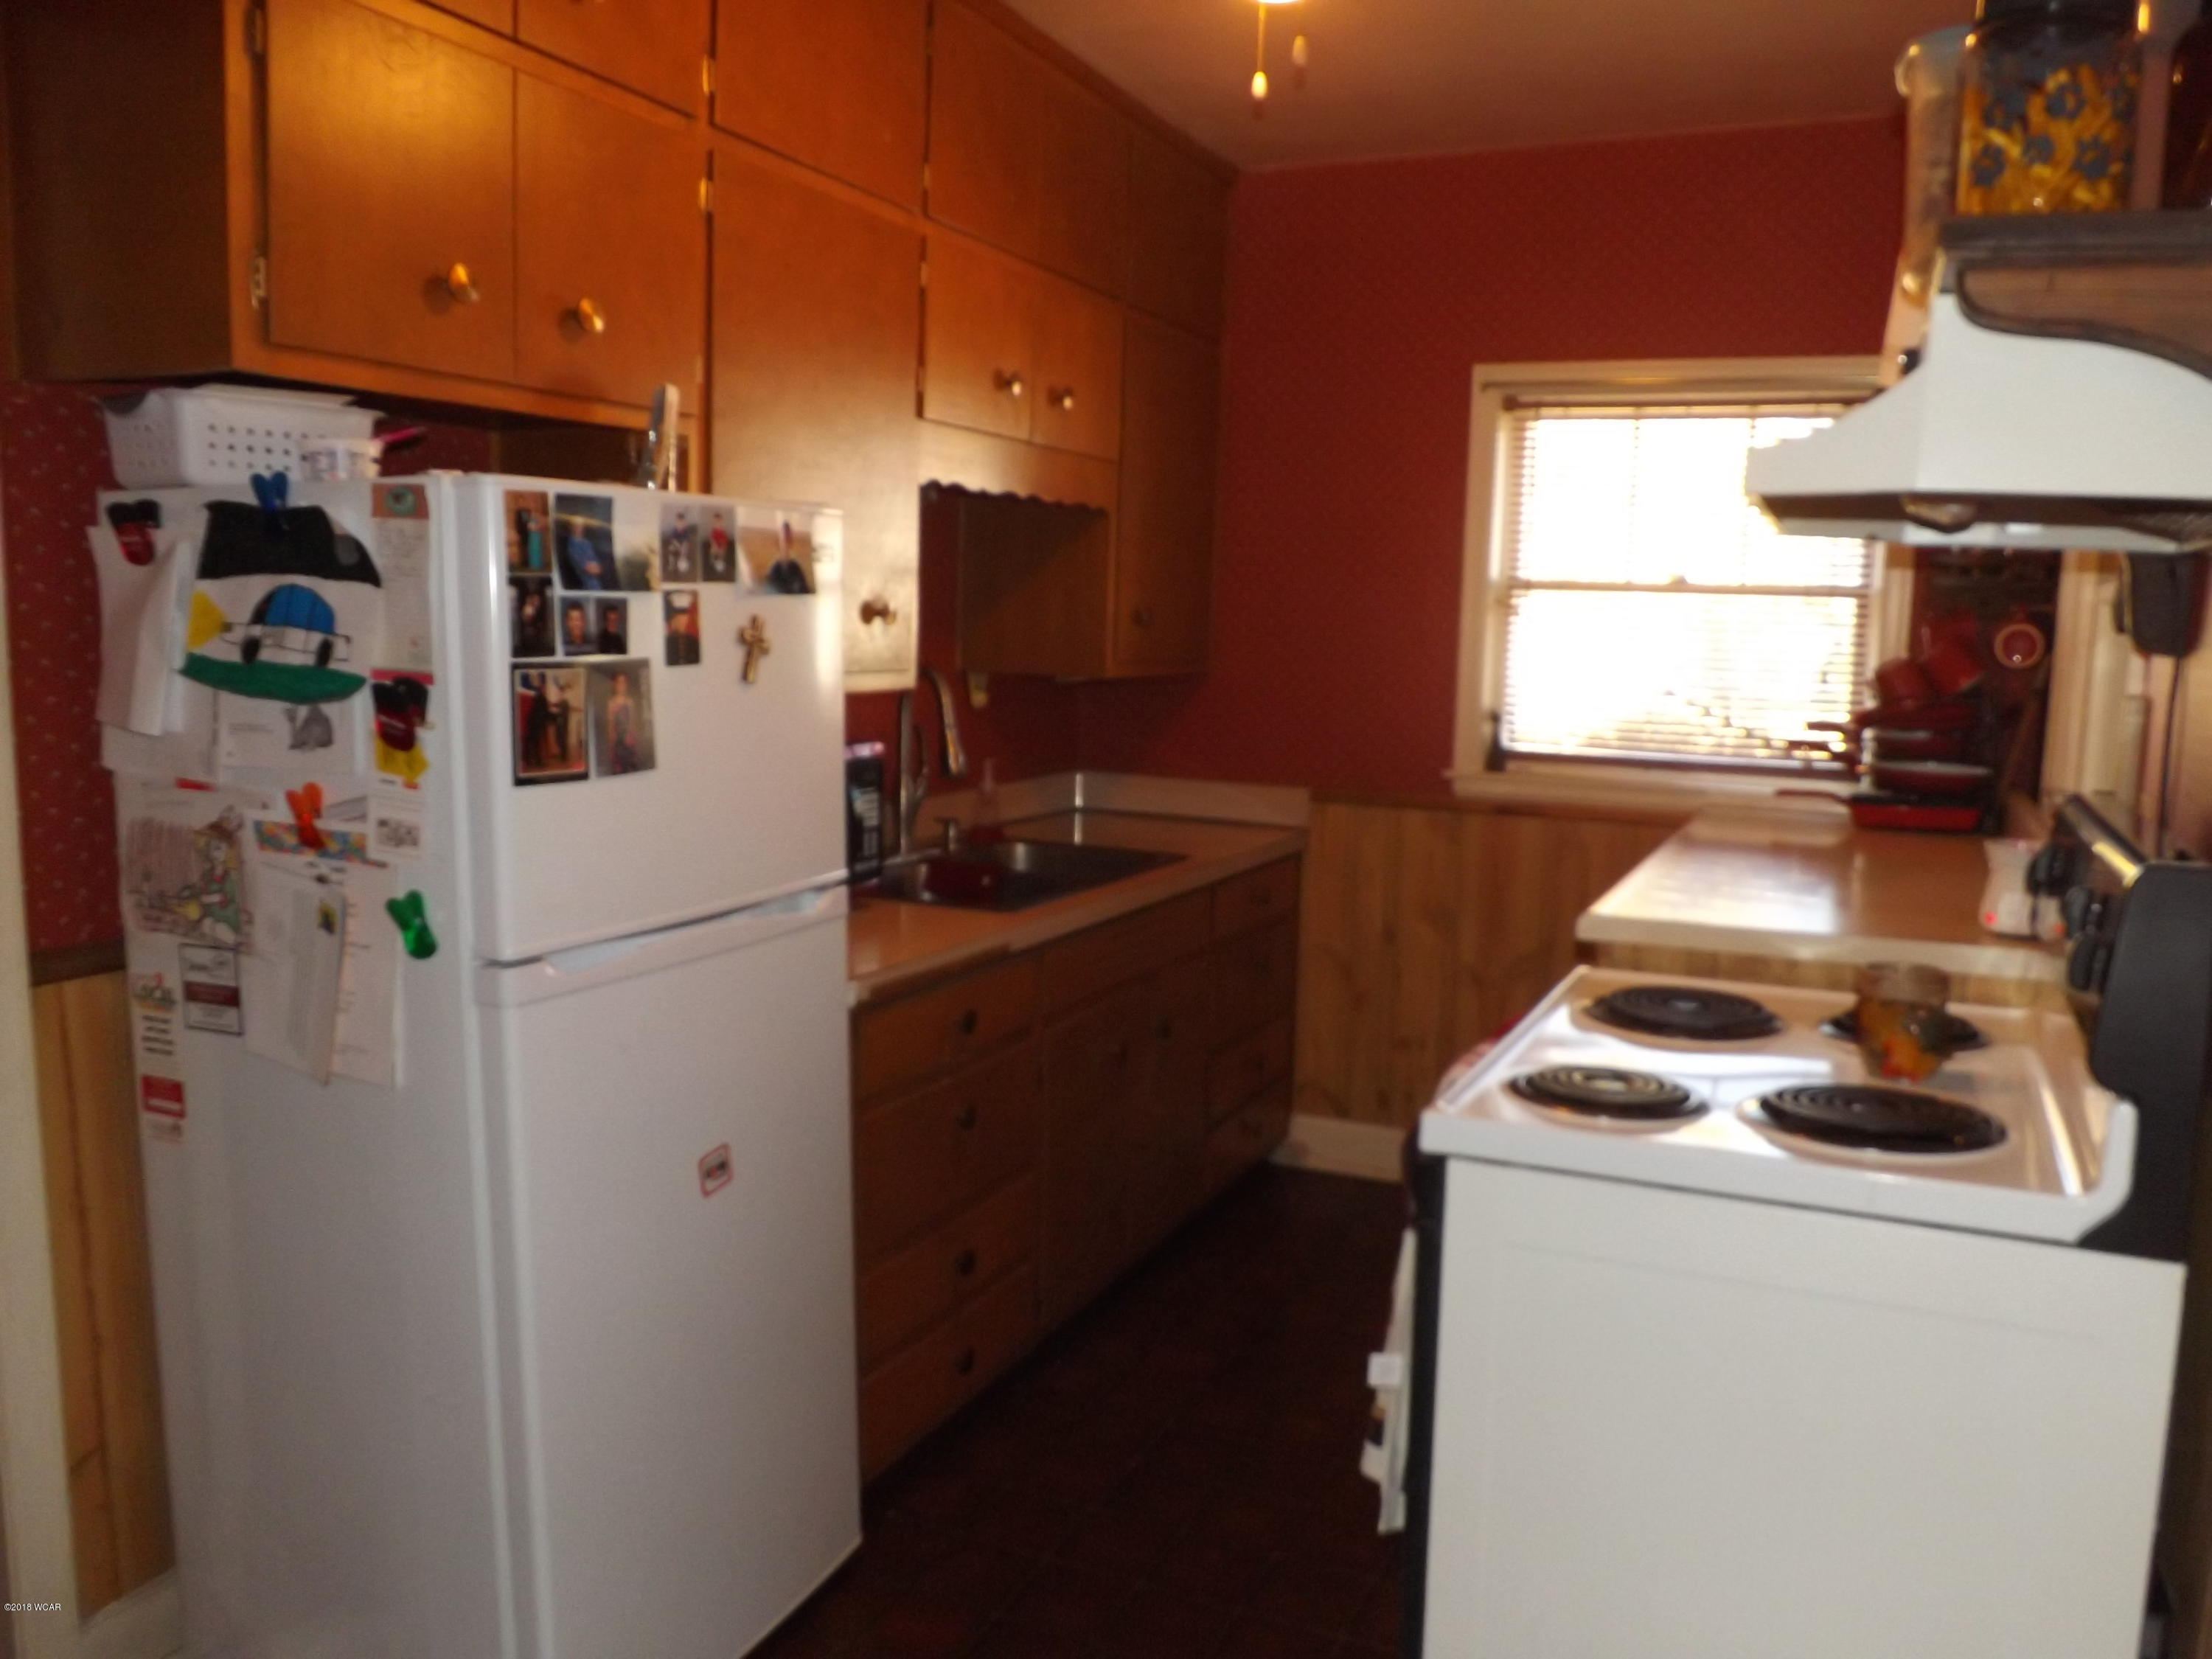 249 W Rooney Avenue,Appleton,2 Bedrooms Bedrooms,1 BathroomBathrooms,Single Family,W Rooney Avenue,6032673